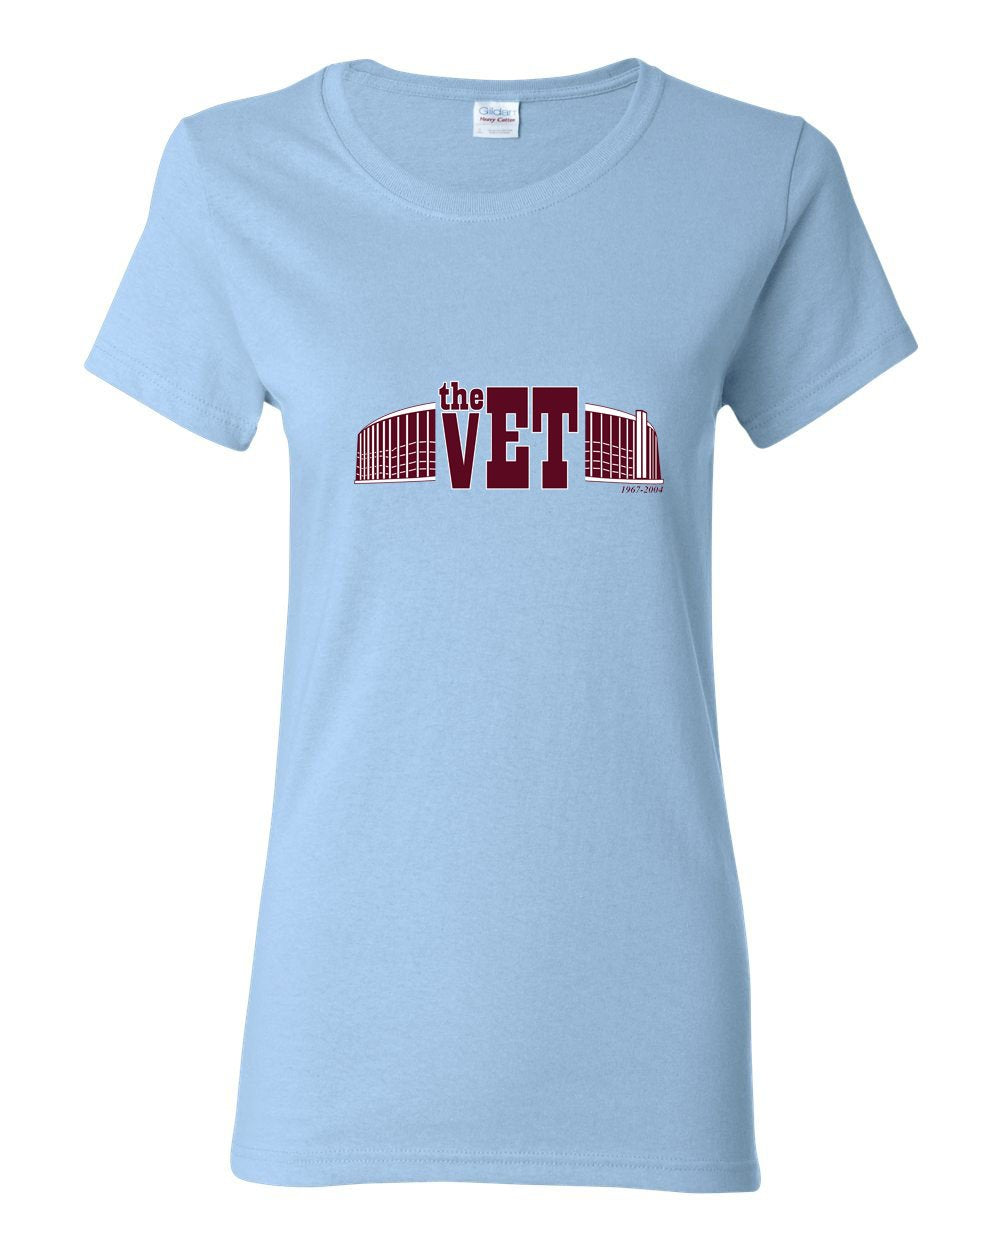 The Vet (Baseball) LADIES Missy-Fit T-Shirt